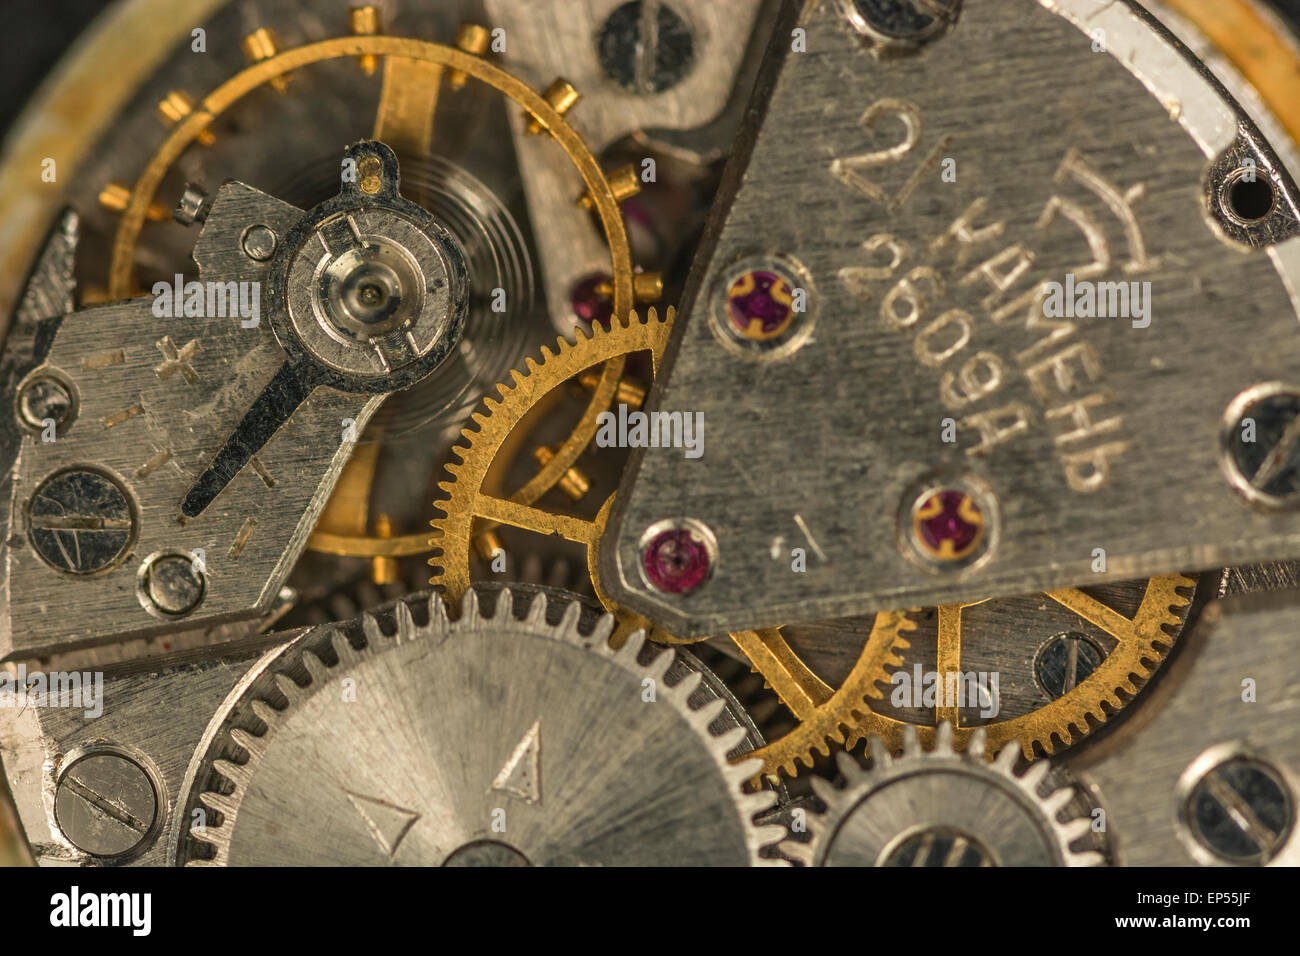 Macro-photo of Russian wristwatch mechanism. Key focus on teeth of brass cog in picture centre. - Stock Image